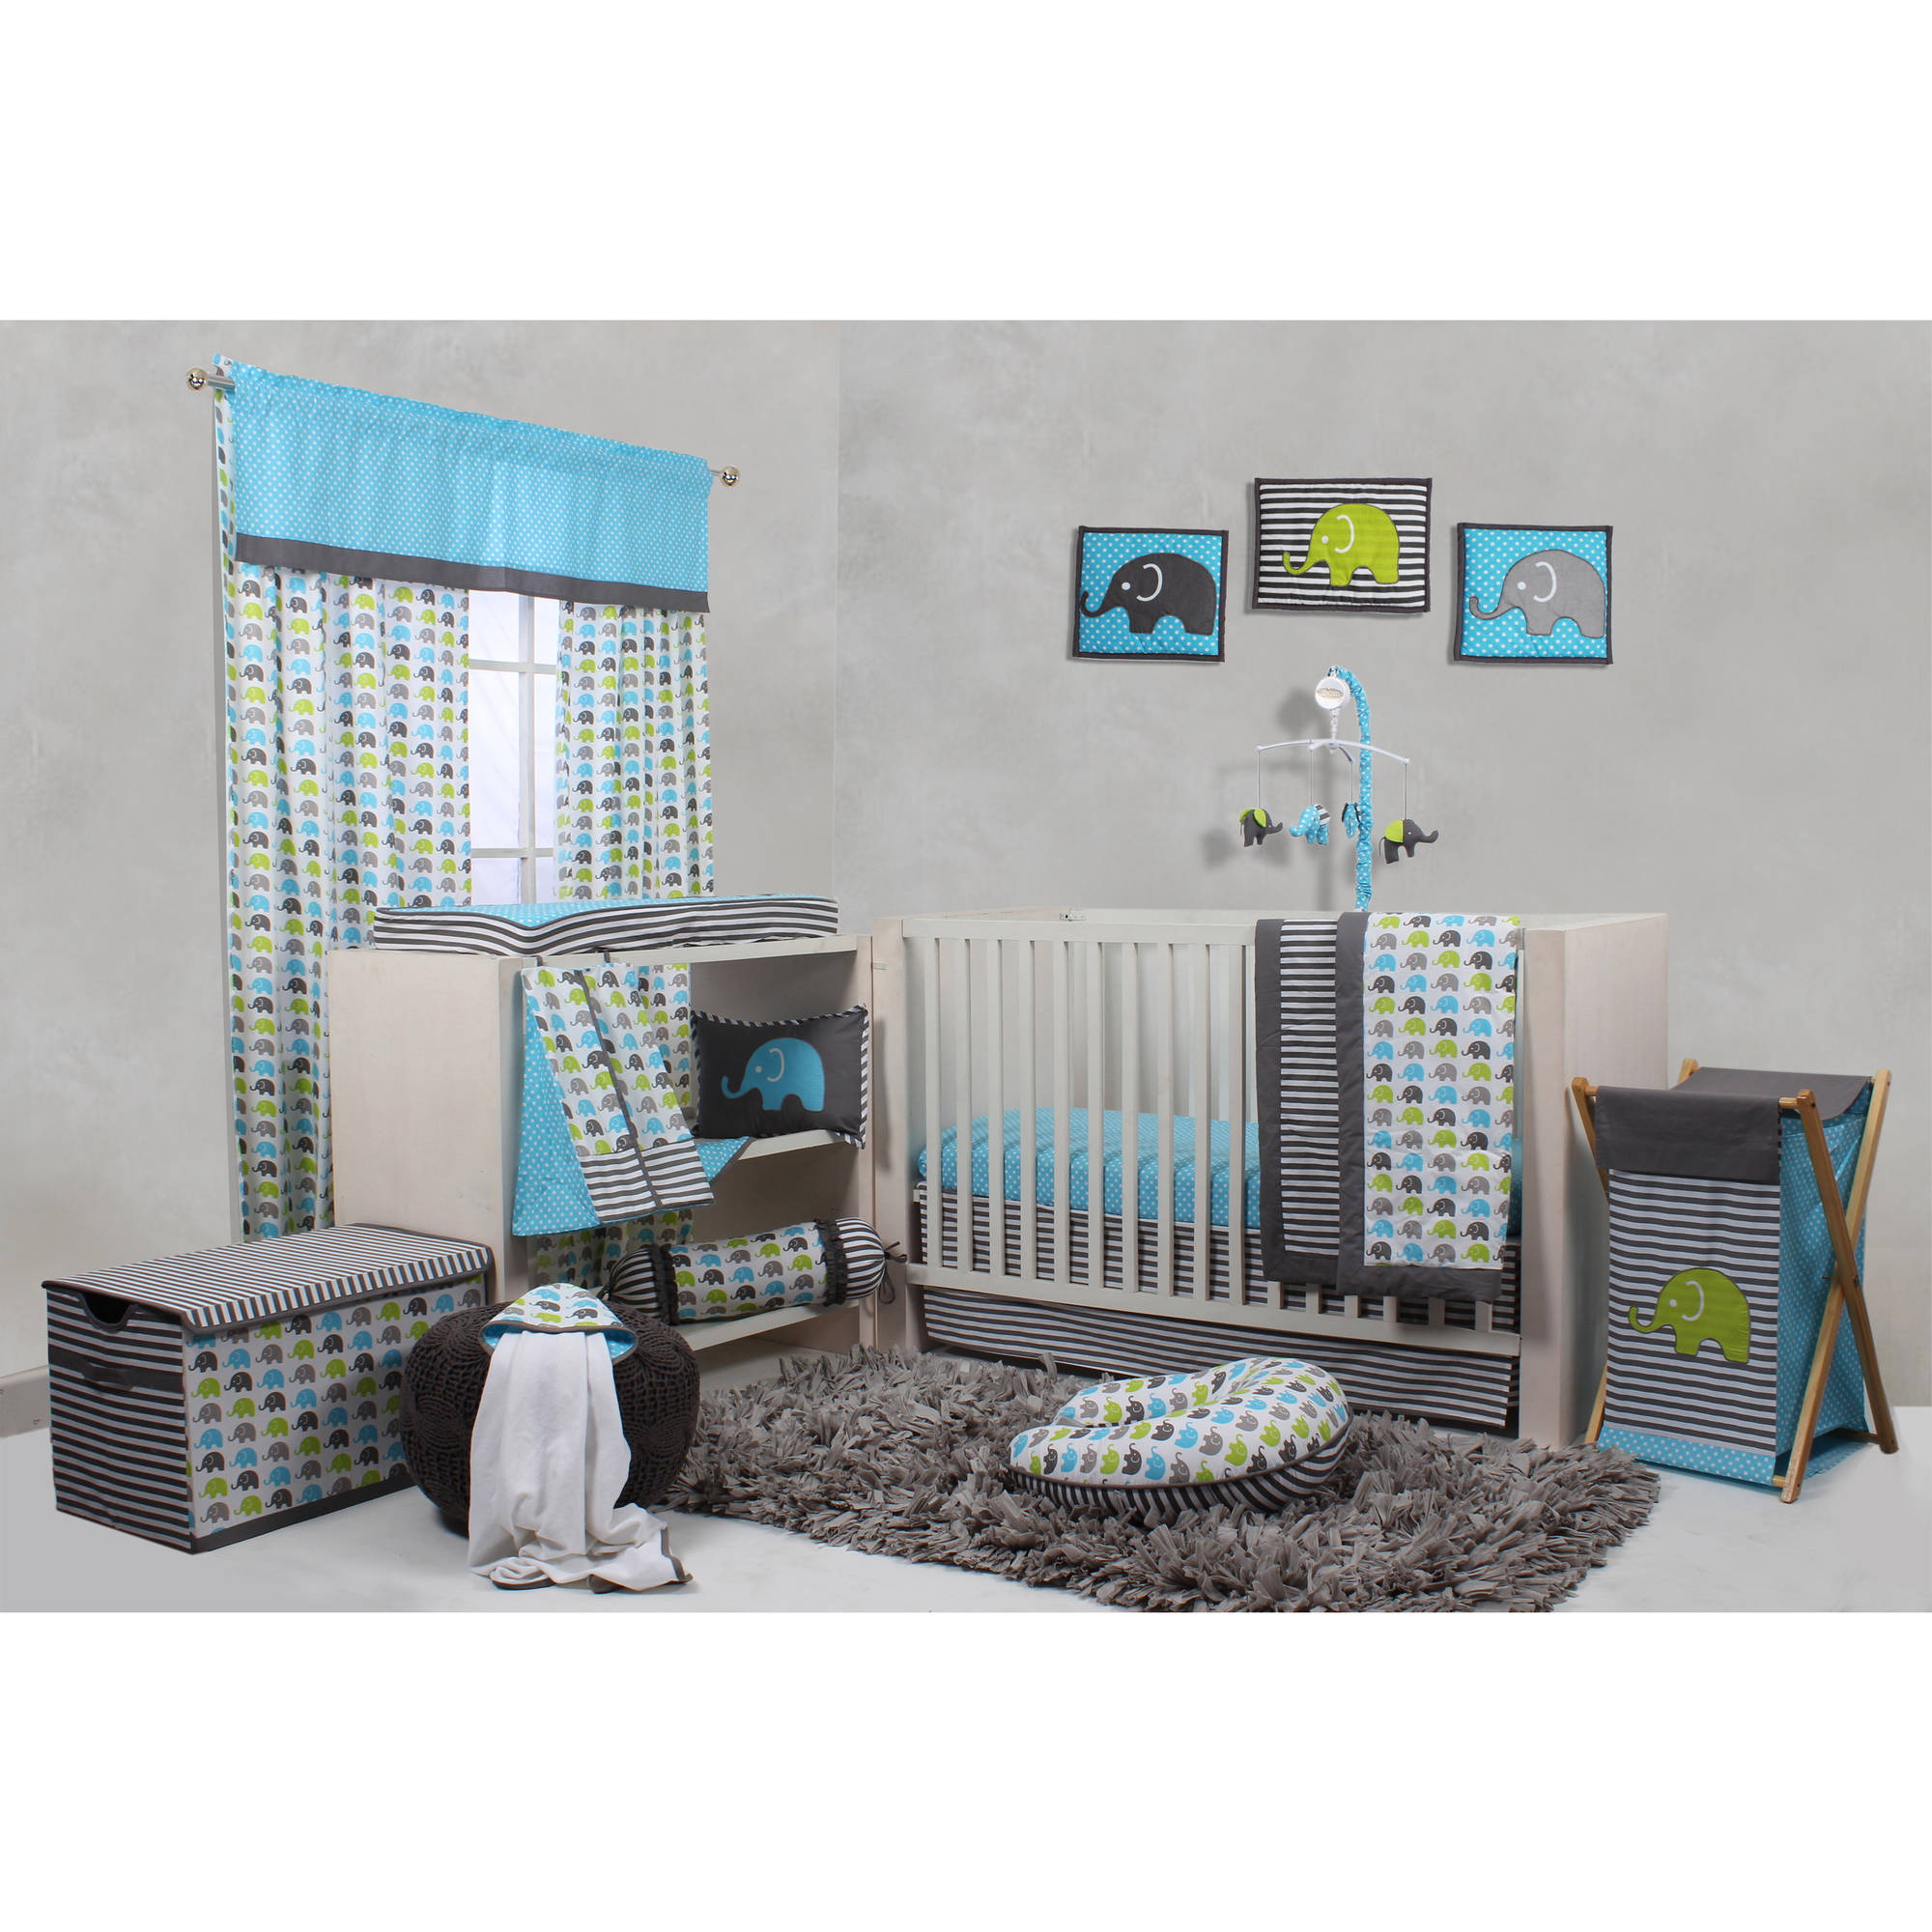 Bacati Elephants 10-Piece Nursery in a Bag Crib Bedding Set (Extra sheet included), for US standard Cribs